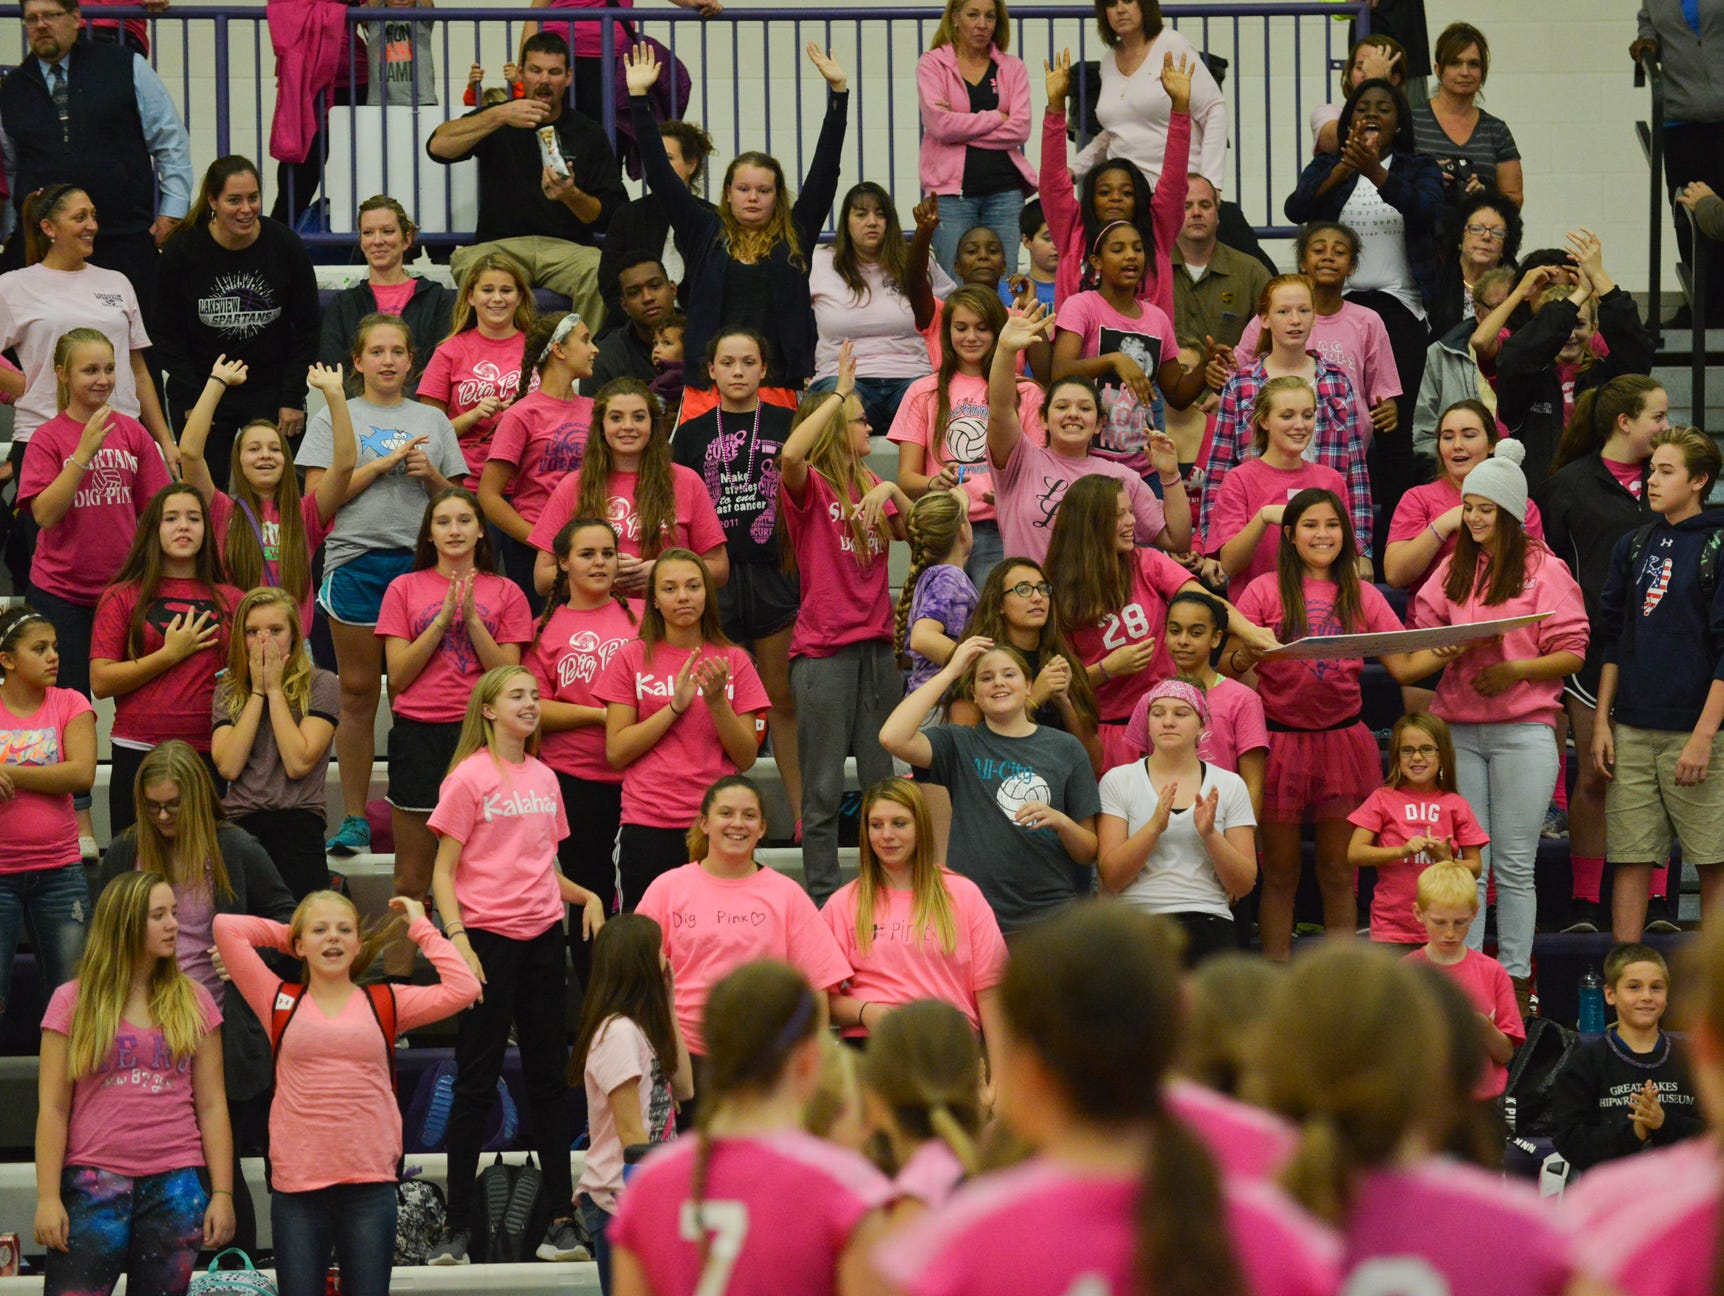 Lakeview students cheer on their volleyball team as the players are announced during pregame.